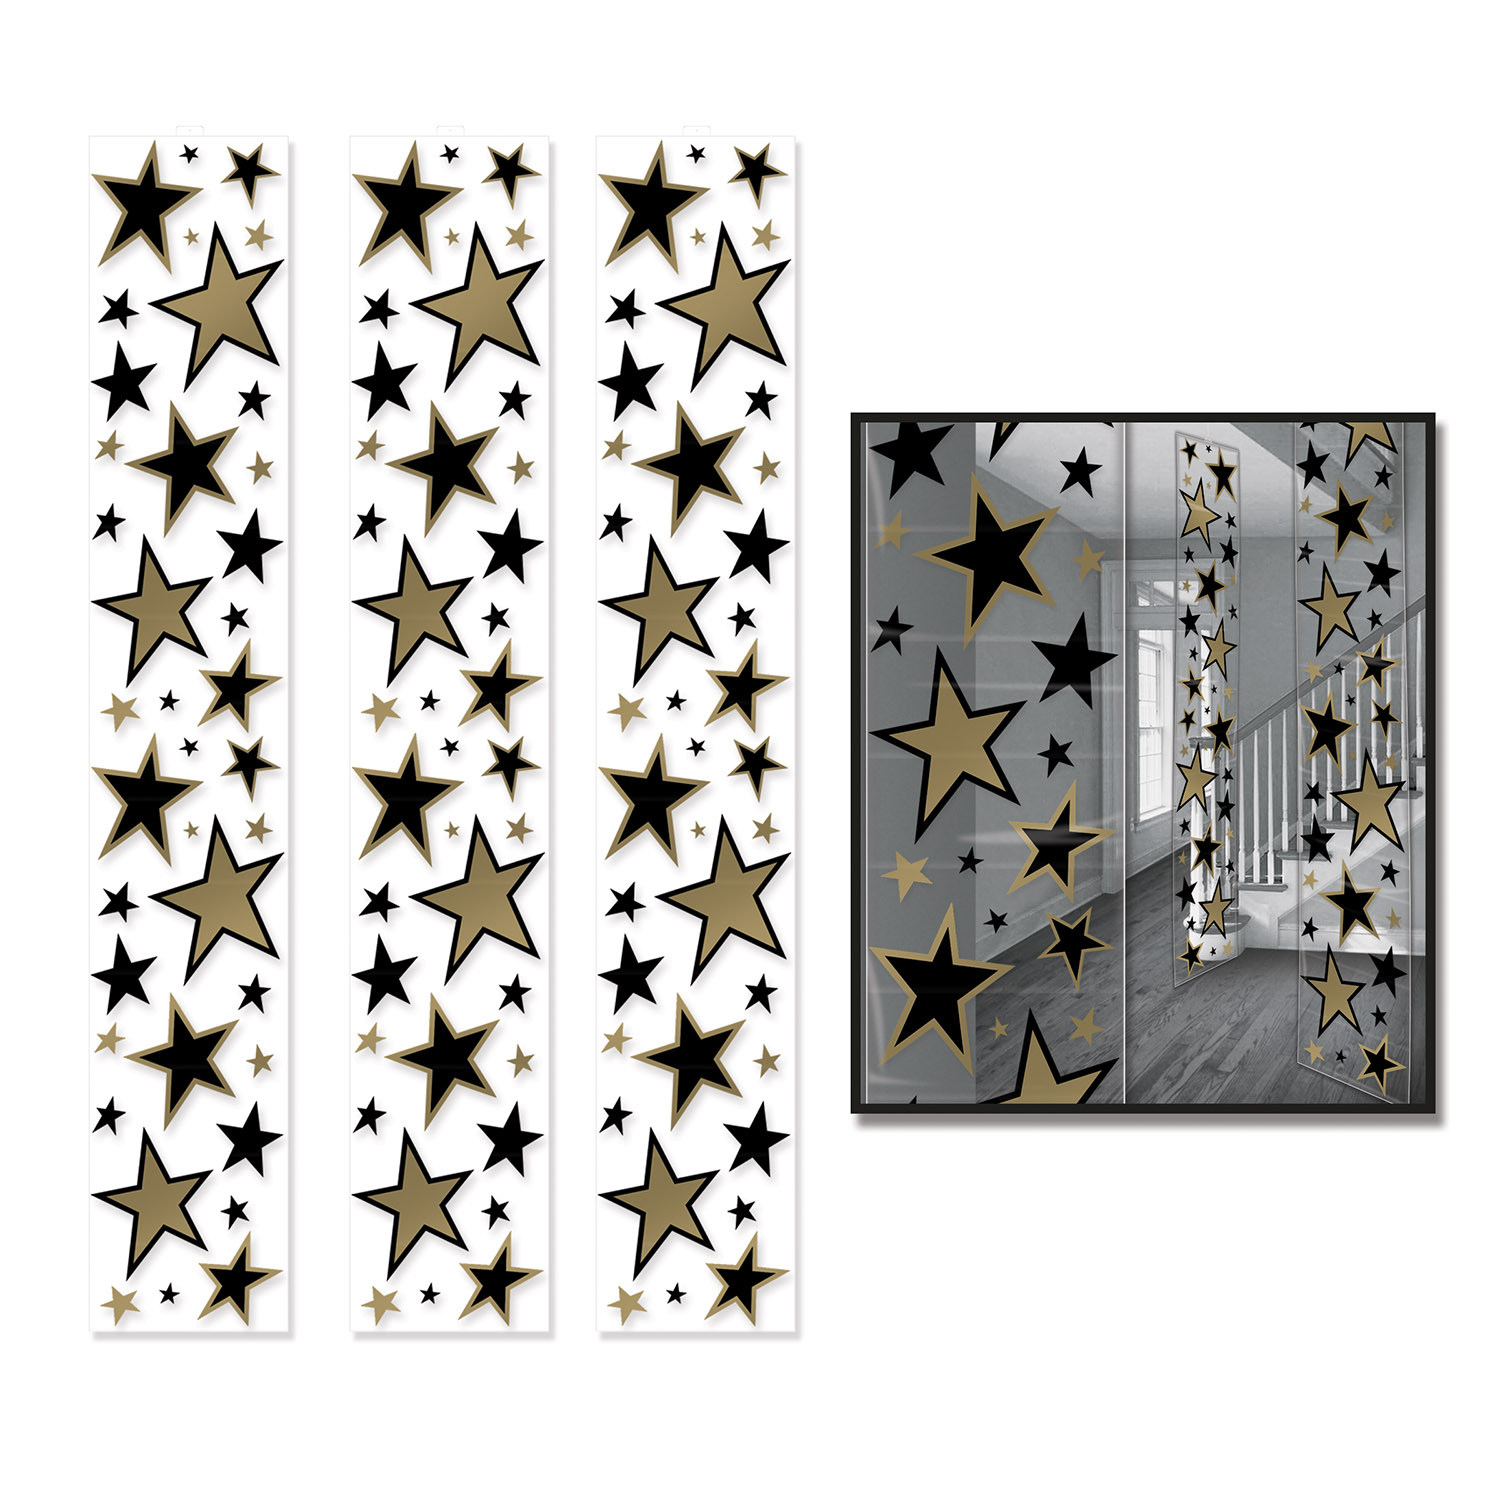 Clear Star Party Panels with gold and black stars in various sizes.